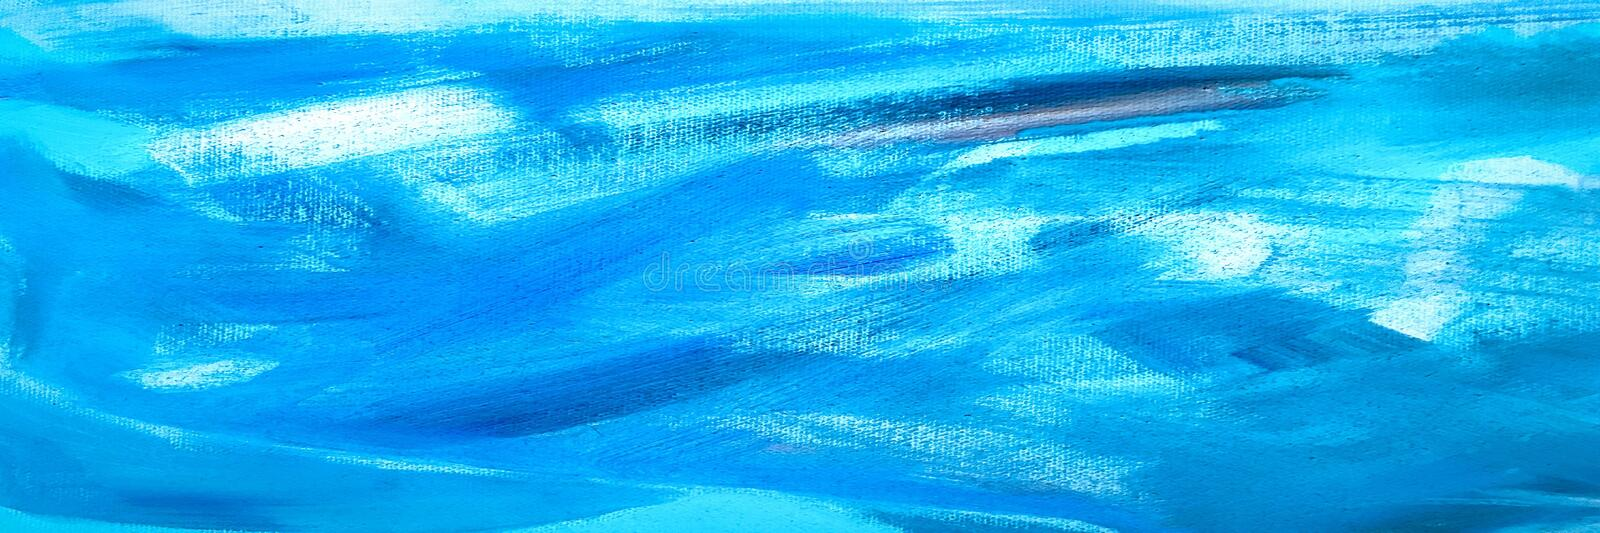 Abstract oil paint texture on canvas, abstract background painting. Paint texture background. royalty free stock photos